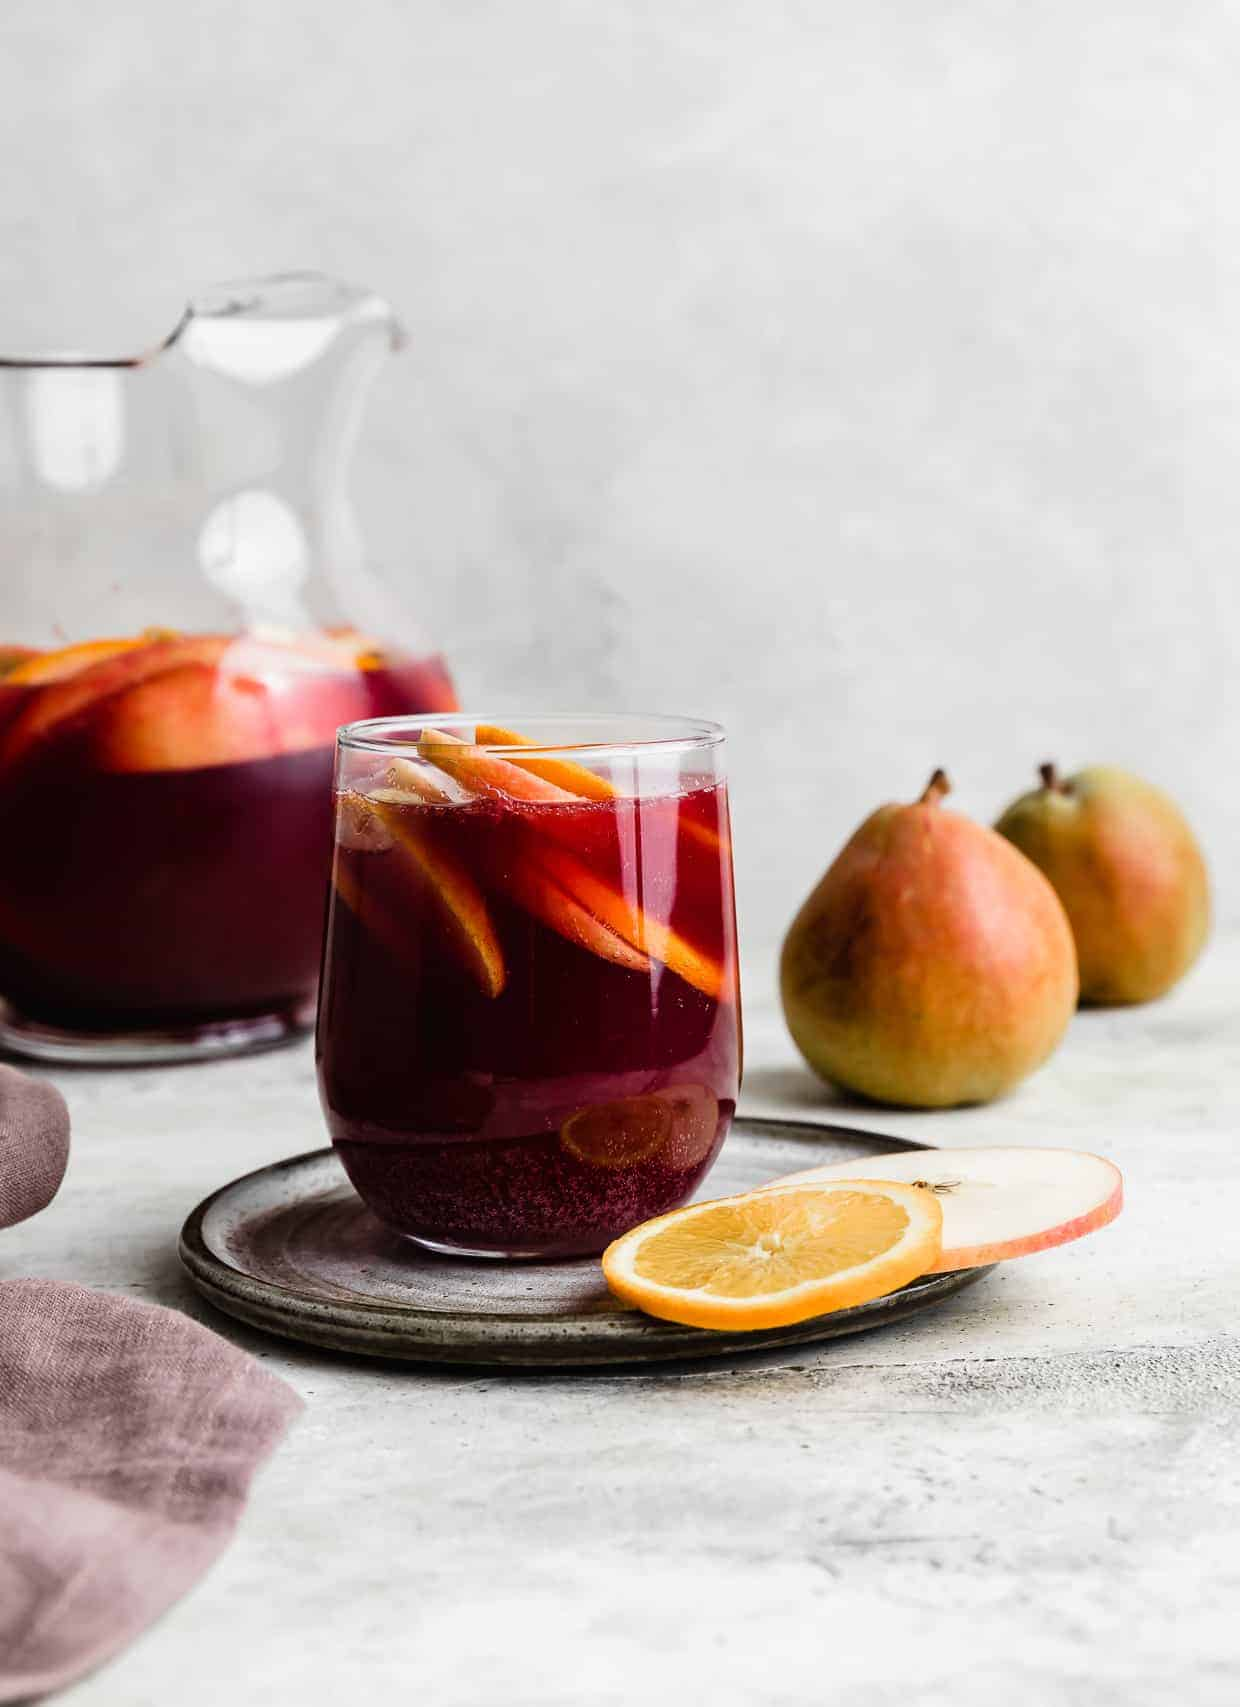 A glass of Non-Alcoholic Sangria against a gray background.